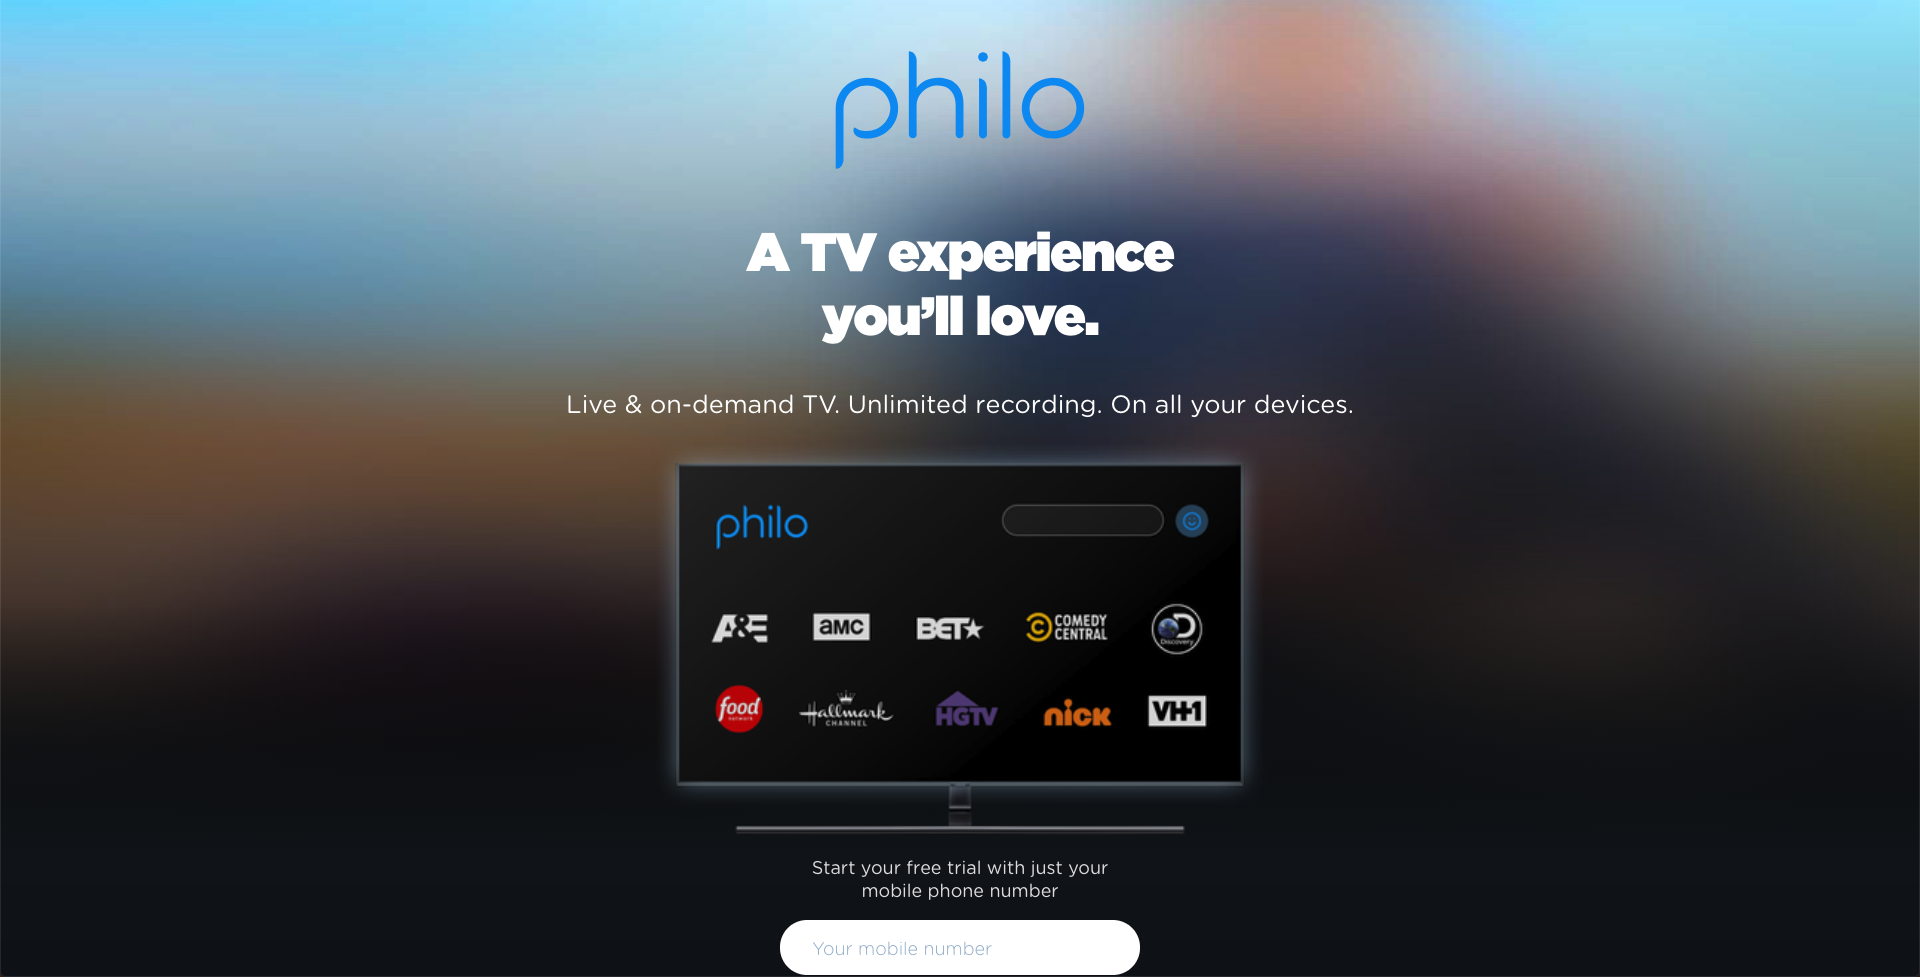 philo watch ae without cable